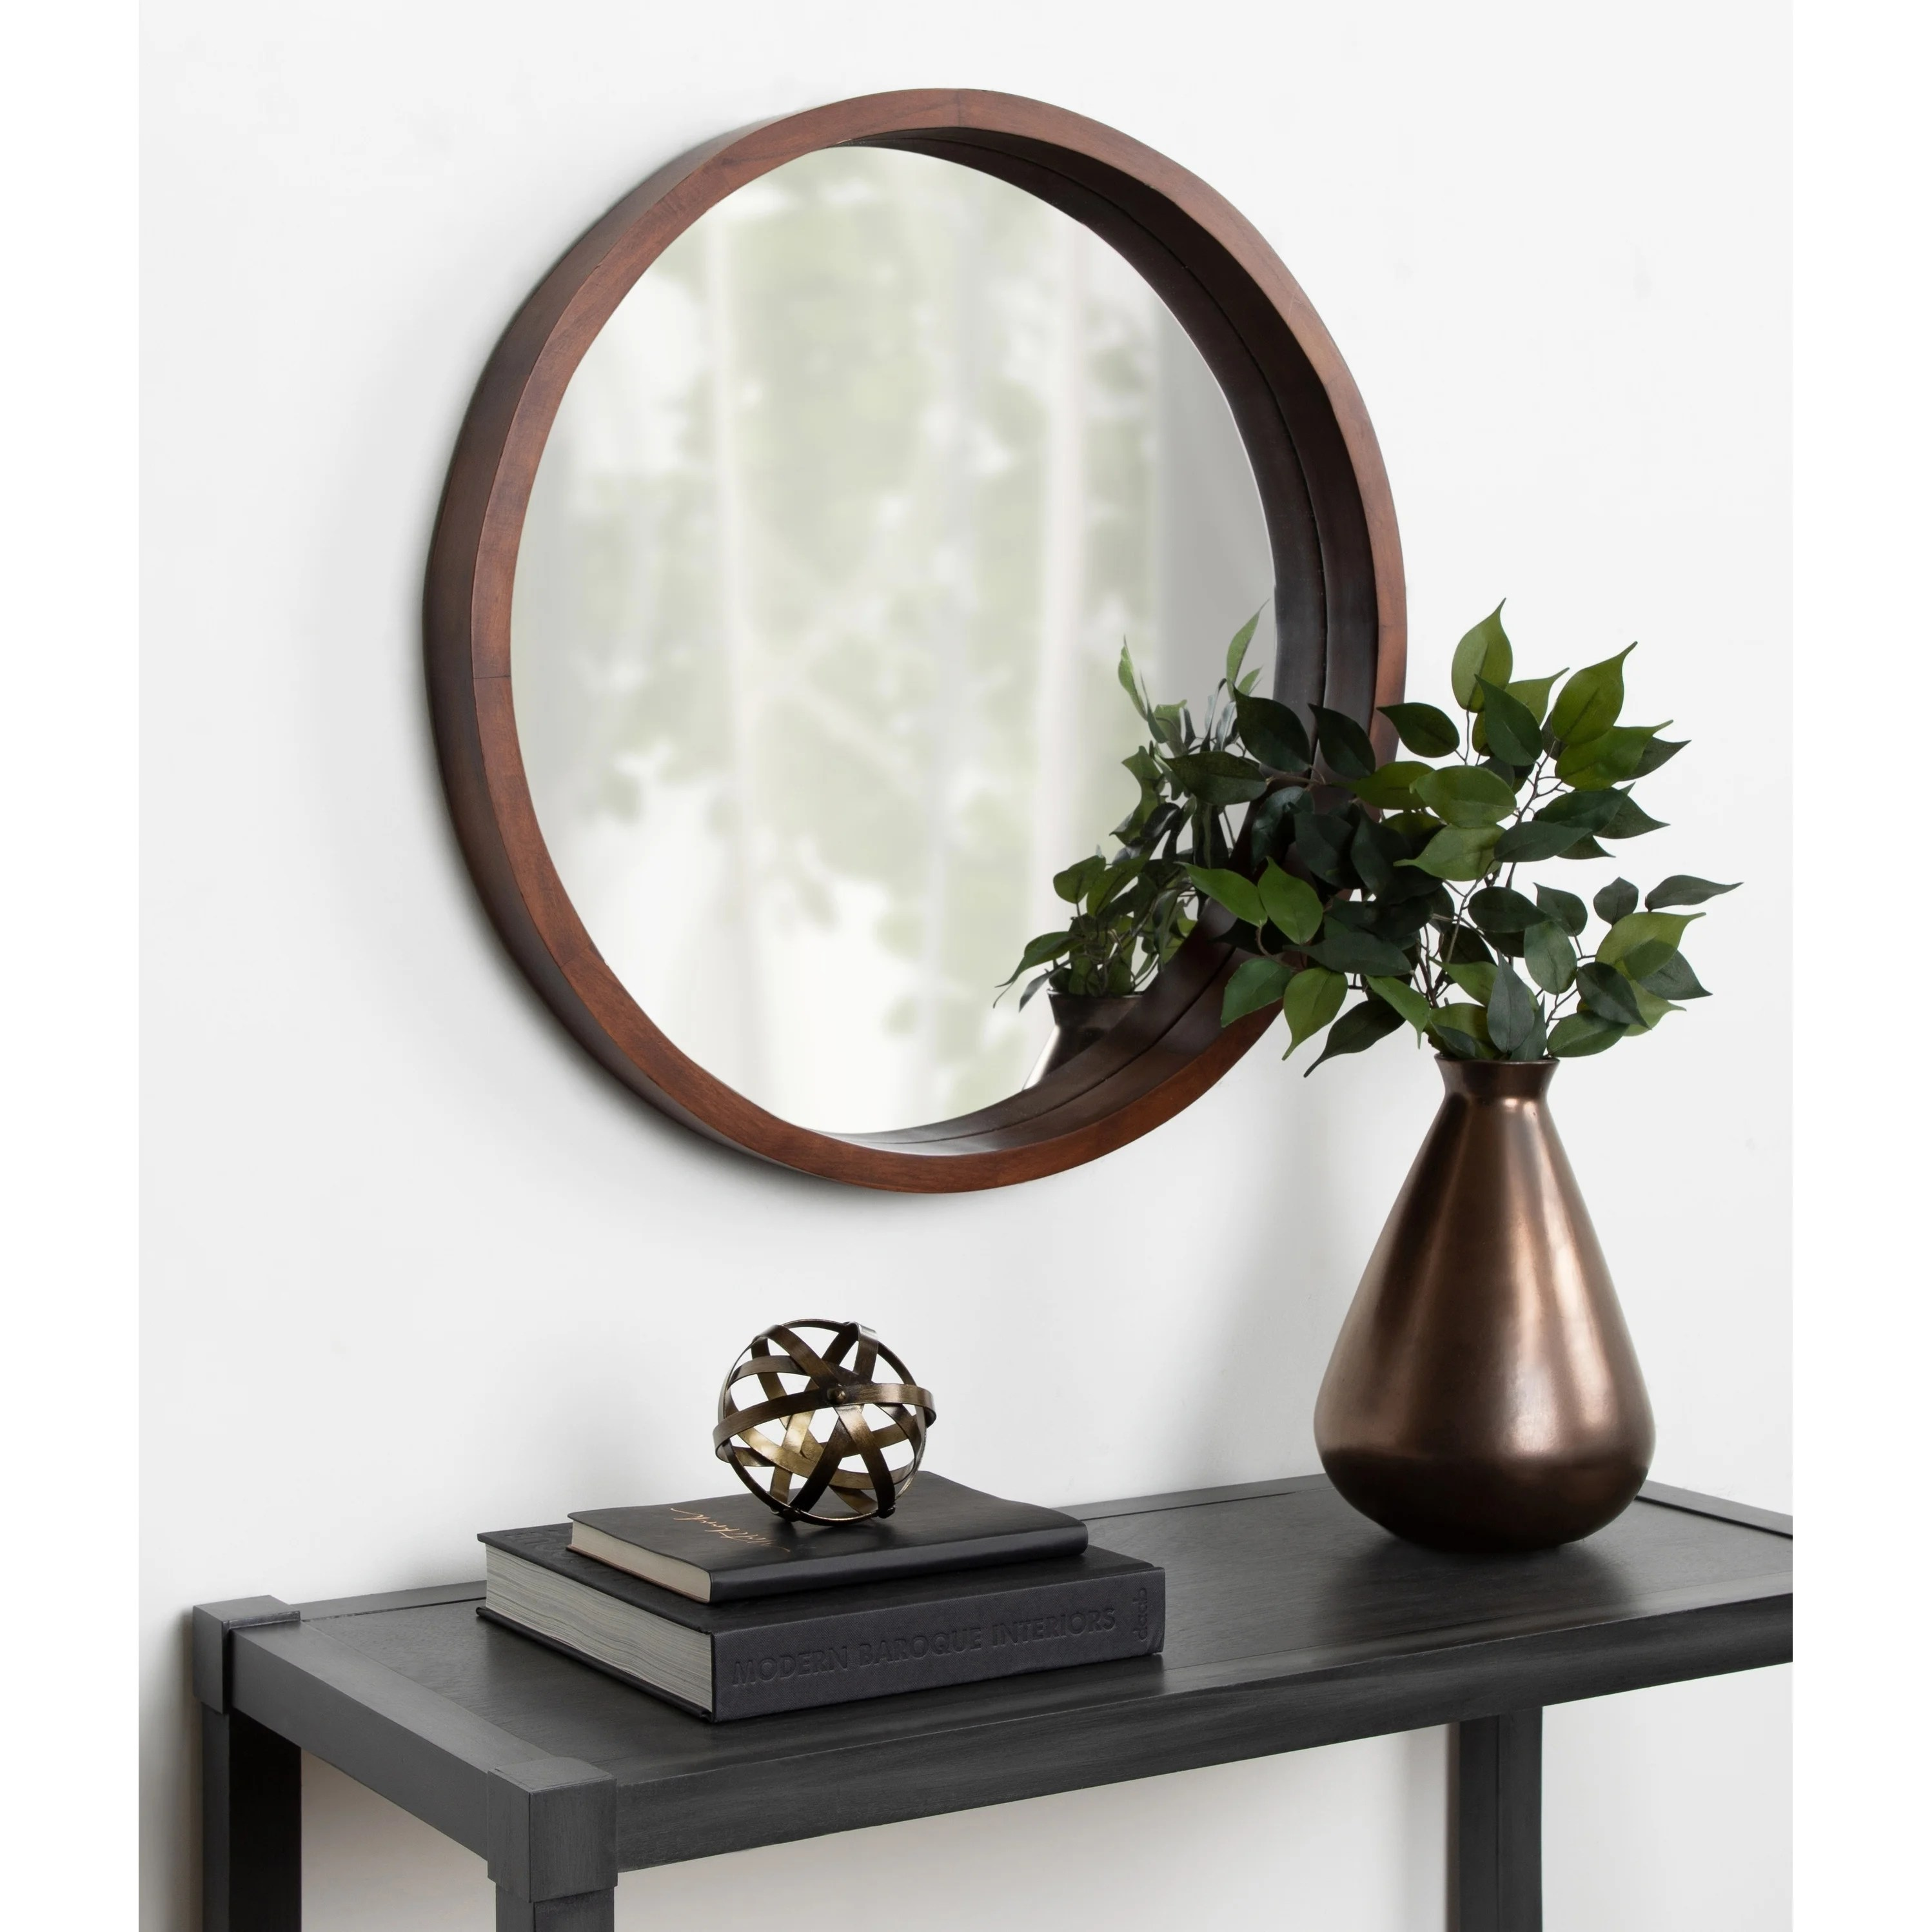 Interio Sofa Harrison Shop Kate And Laurel Hutton Round Wood Wall Mirror 22